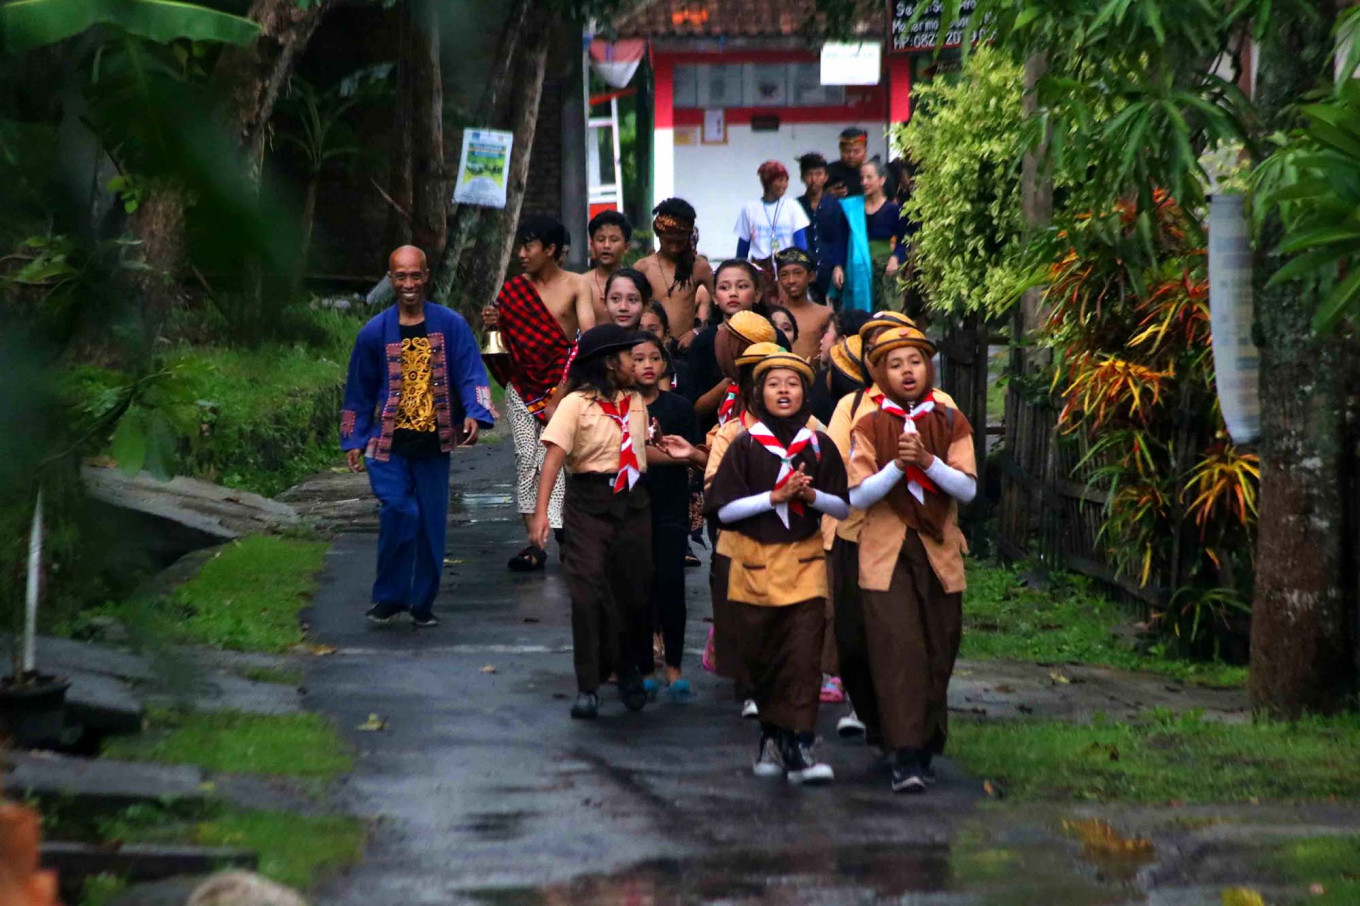 Mugiyono (left, dressed in blue) walks with children and other participants to introduce the festival in Kartasura, Central Java, on Saturday (Jan. 12, 2019). JP/Maksum Nur Fauzan